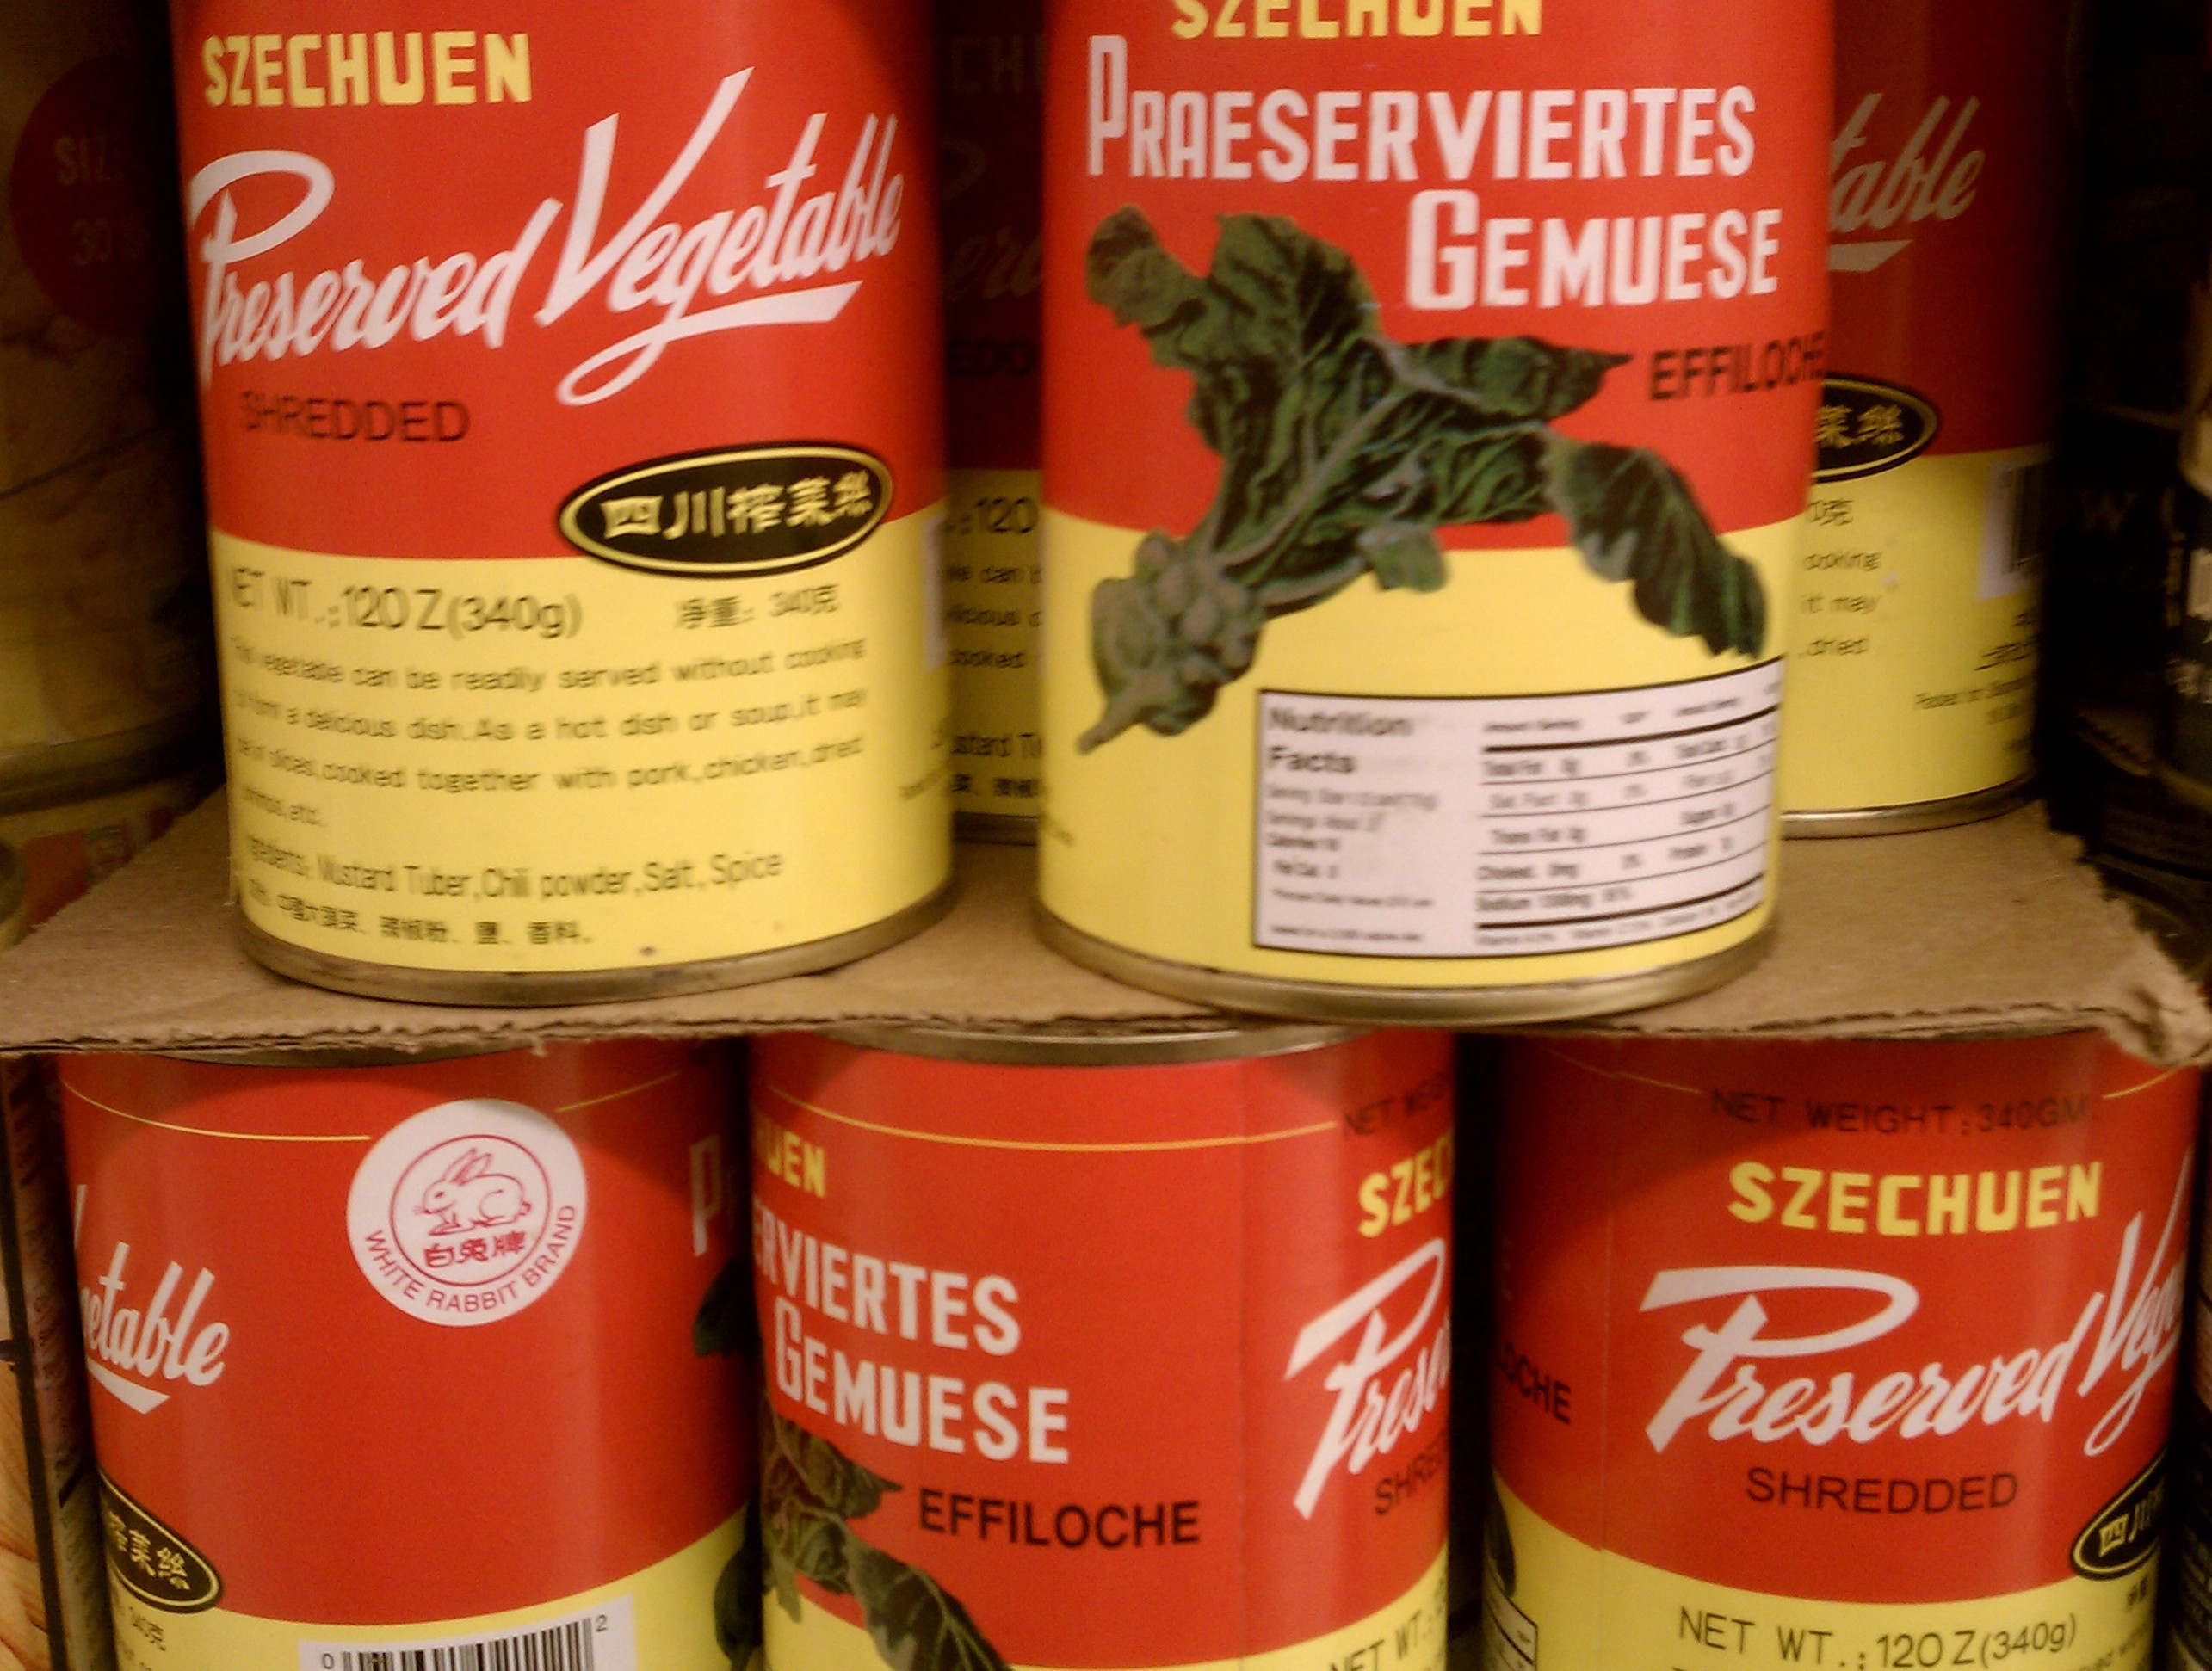 Preserved Vegetable Brand